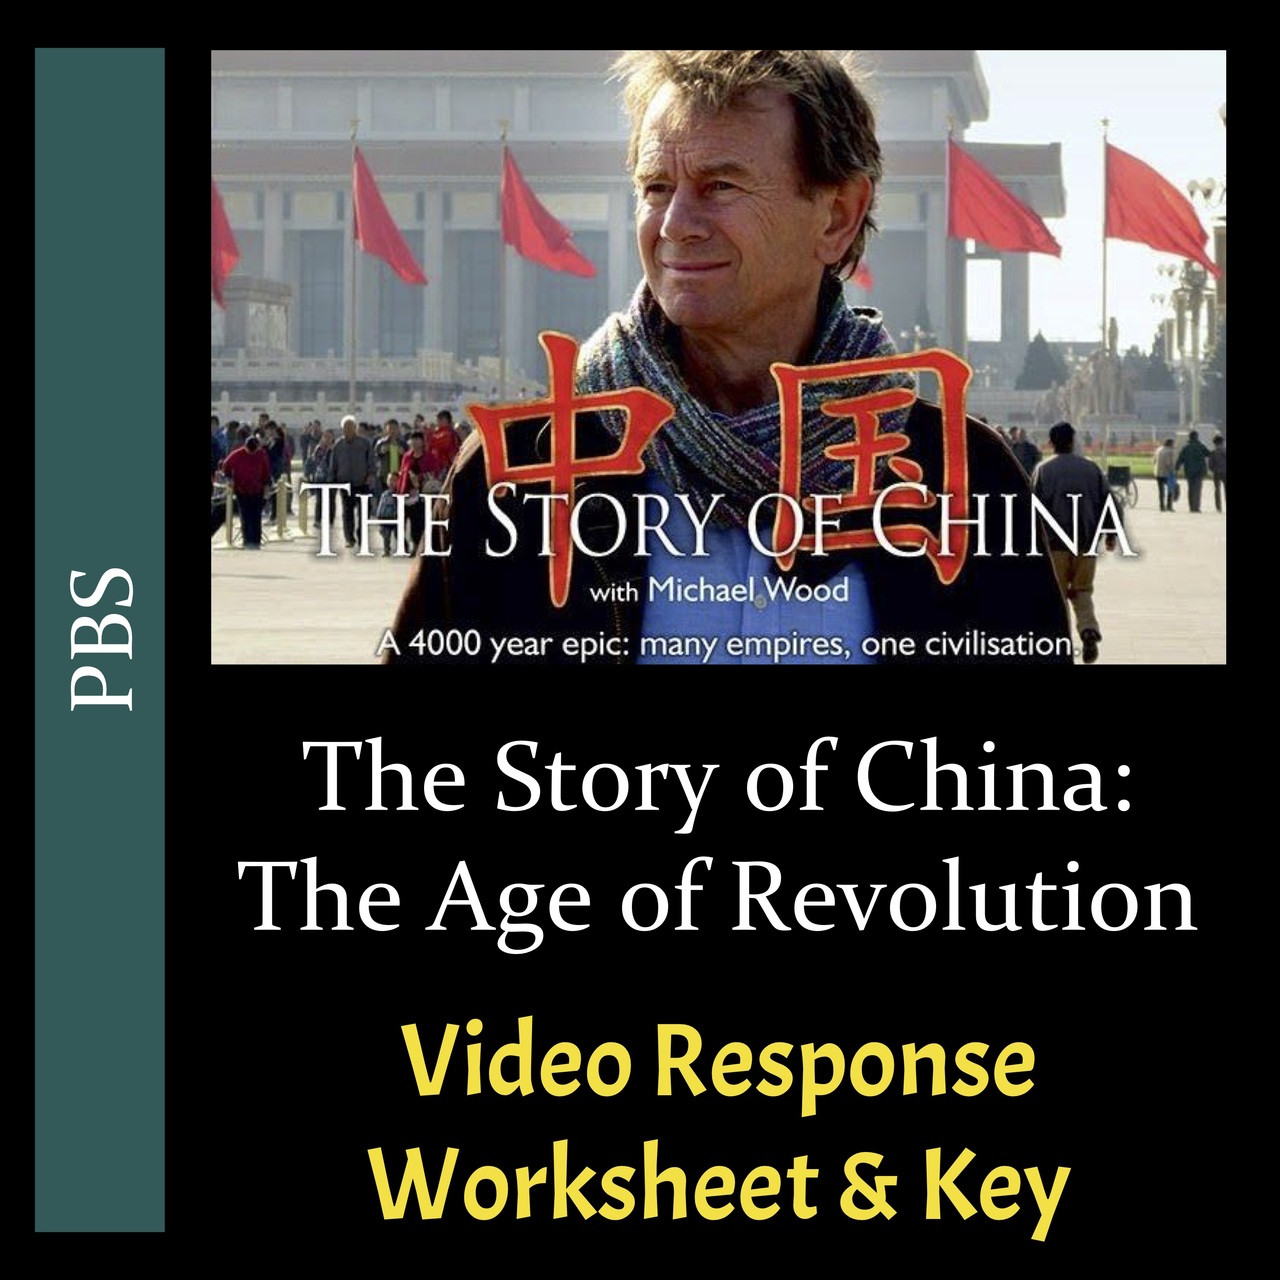 The Story of China - Episode 6: The Age of Revolution - Video Response  Worksheet \u0026 Key (Editable) - Amped Up Learning [ 1280 x 1280 Pixel ]